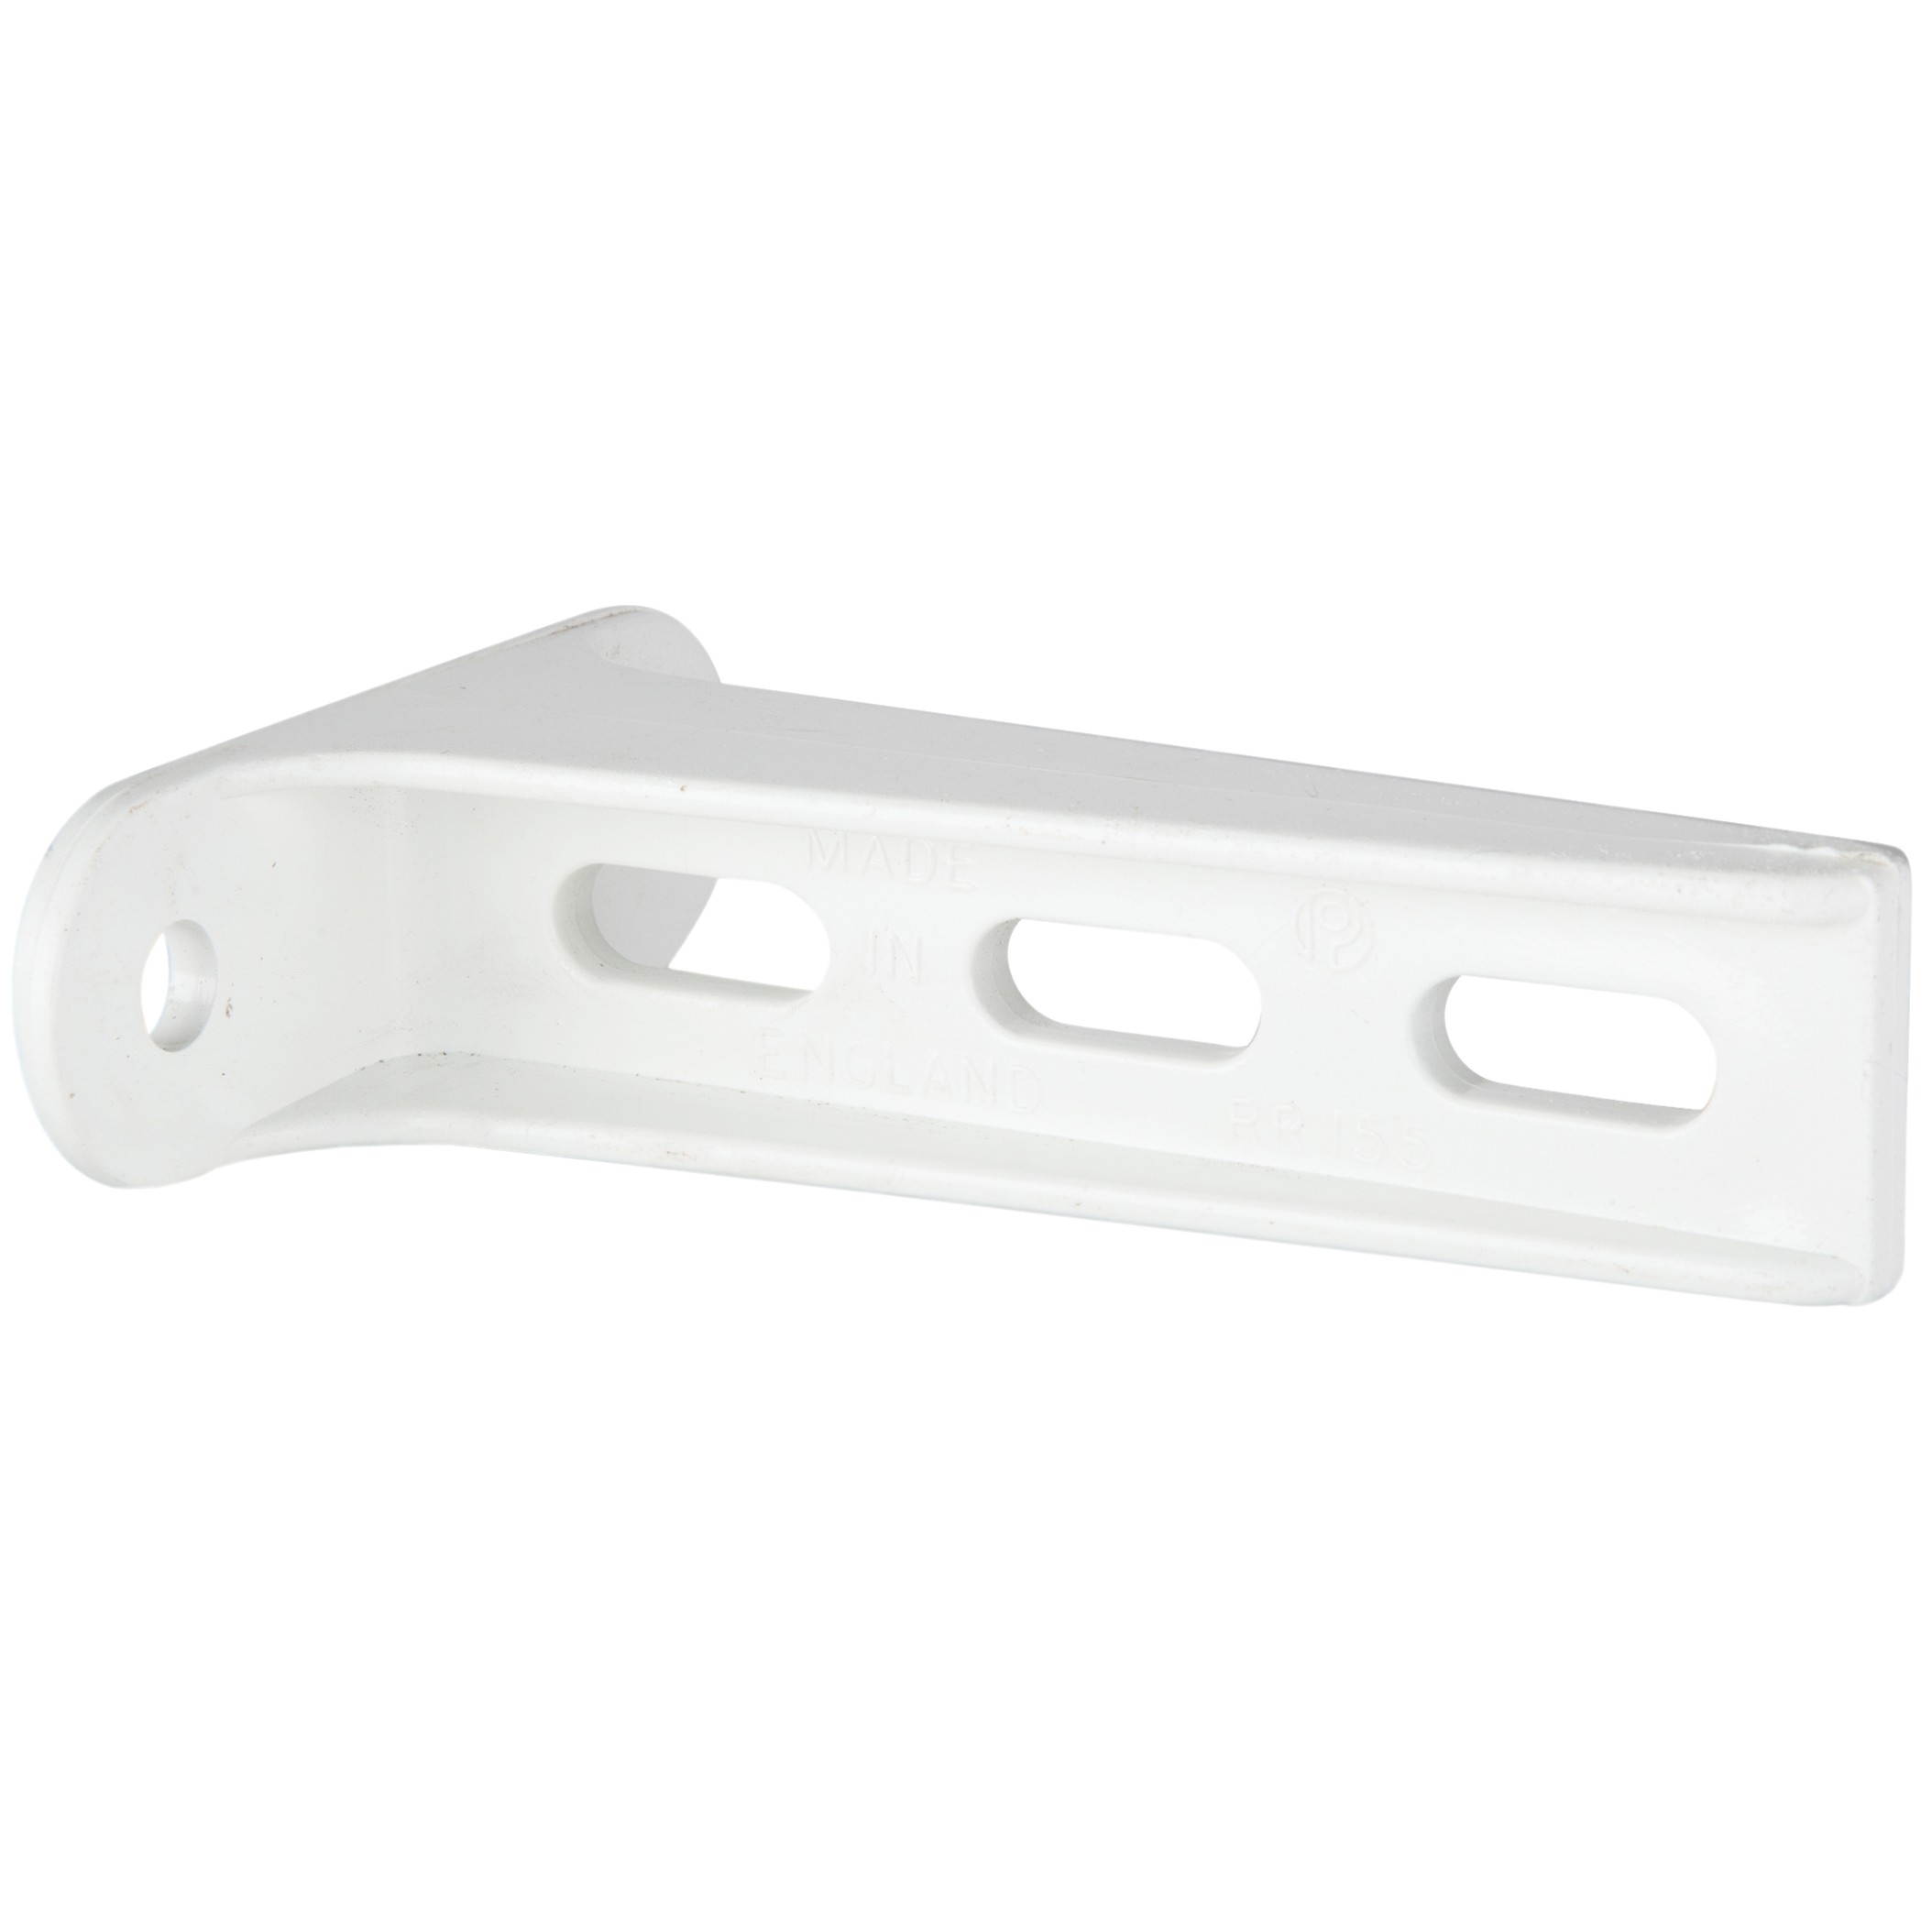 Polypipe Pipe Clip Back Plate (Extended, 112mm) - White